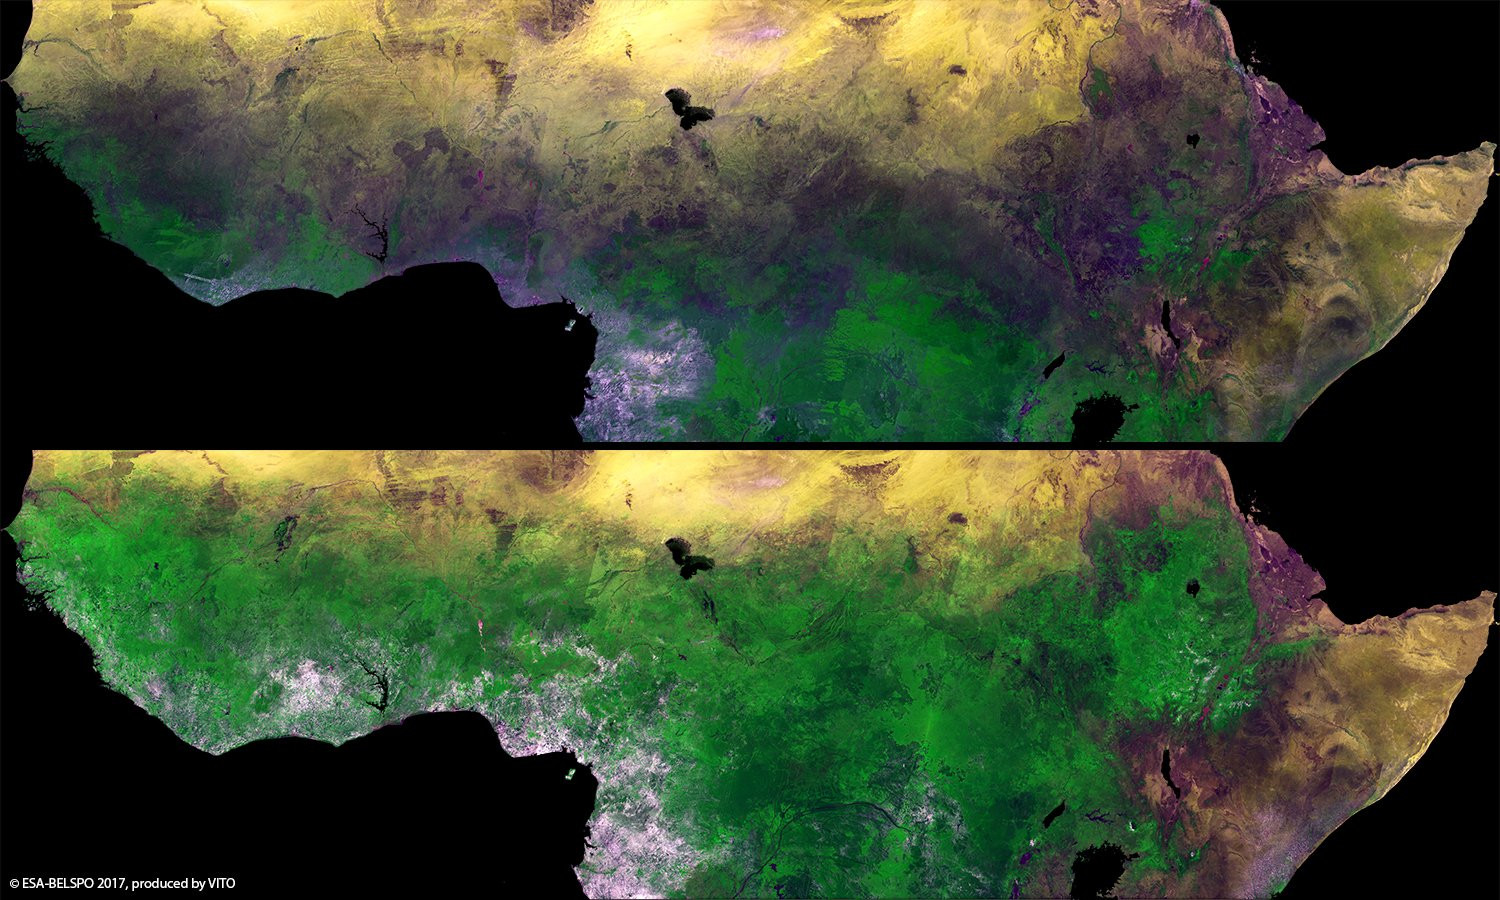 Seasonal changes in Africa's sub-Saharan Sahel show the rainy season vegetation blossoming between February (top) and September (bottom). Credit: ESA.